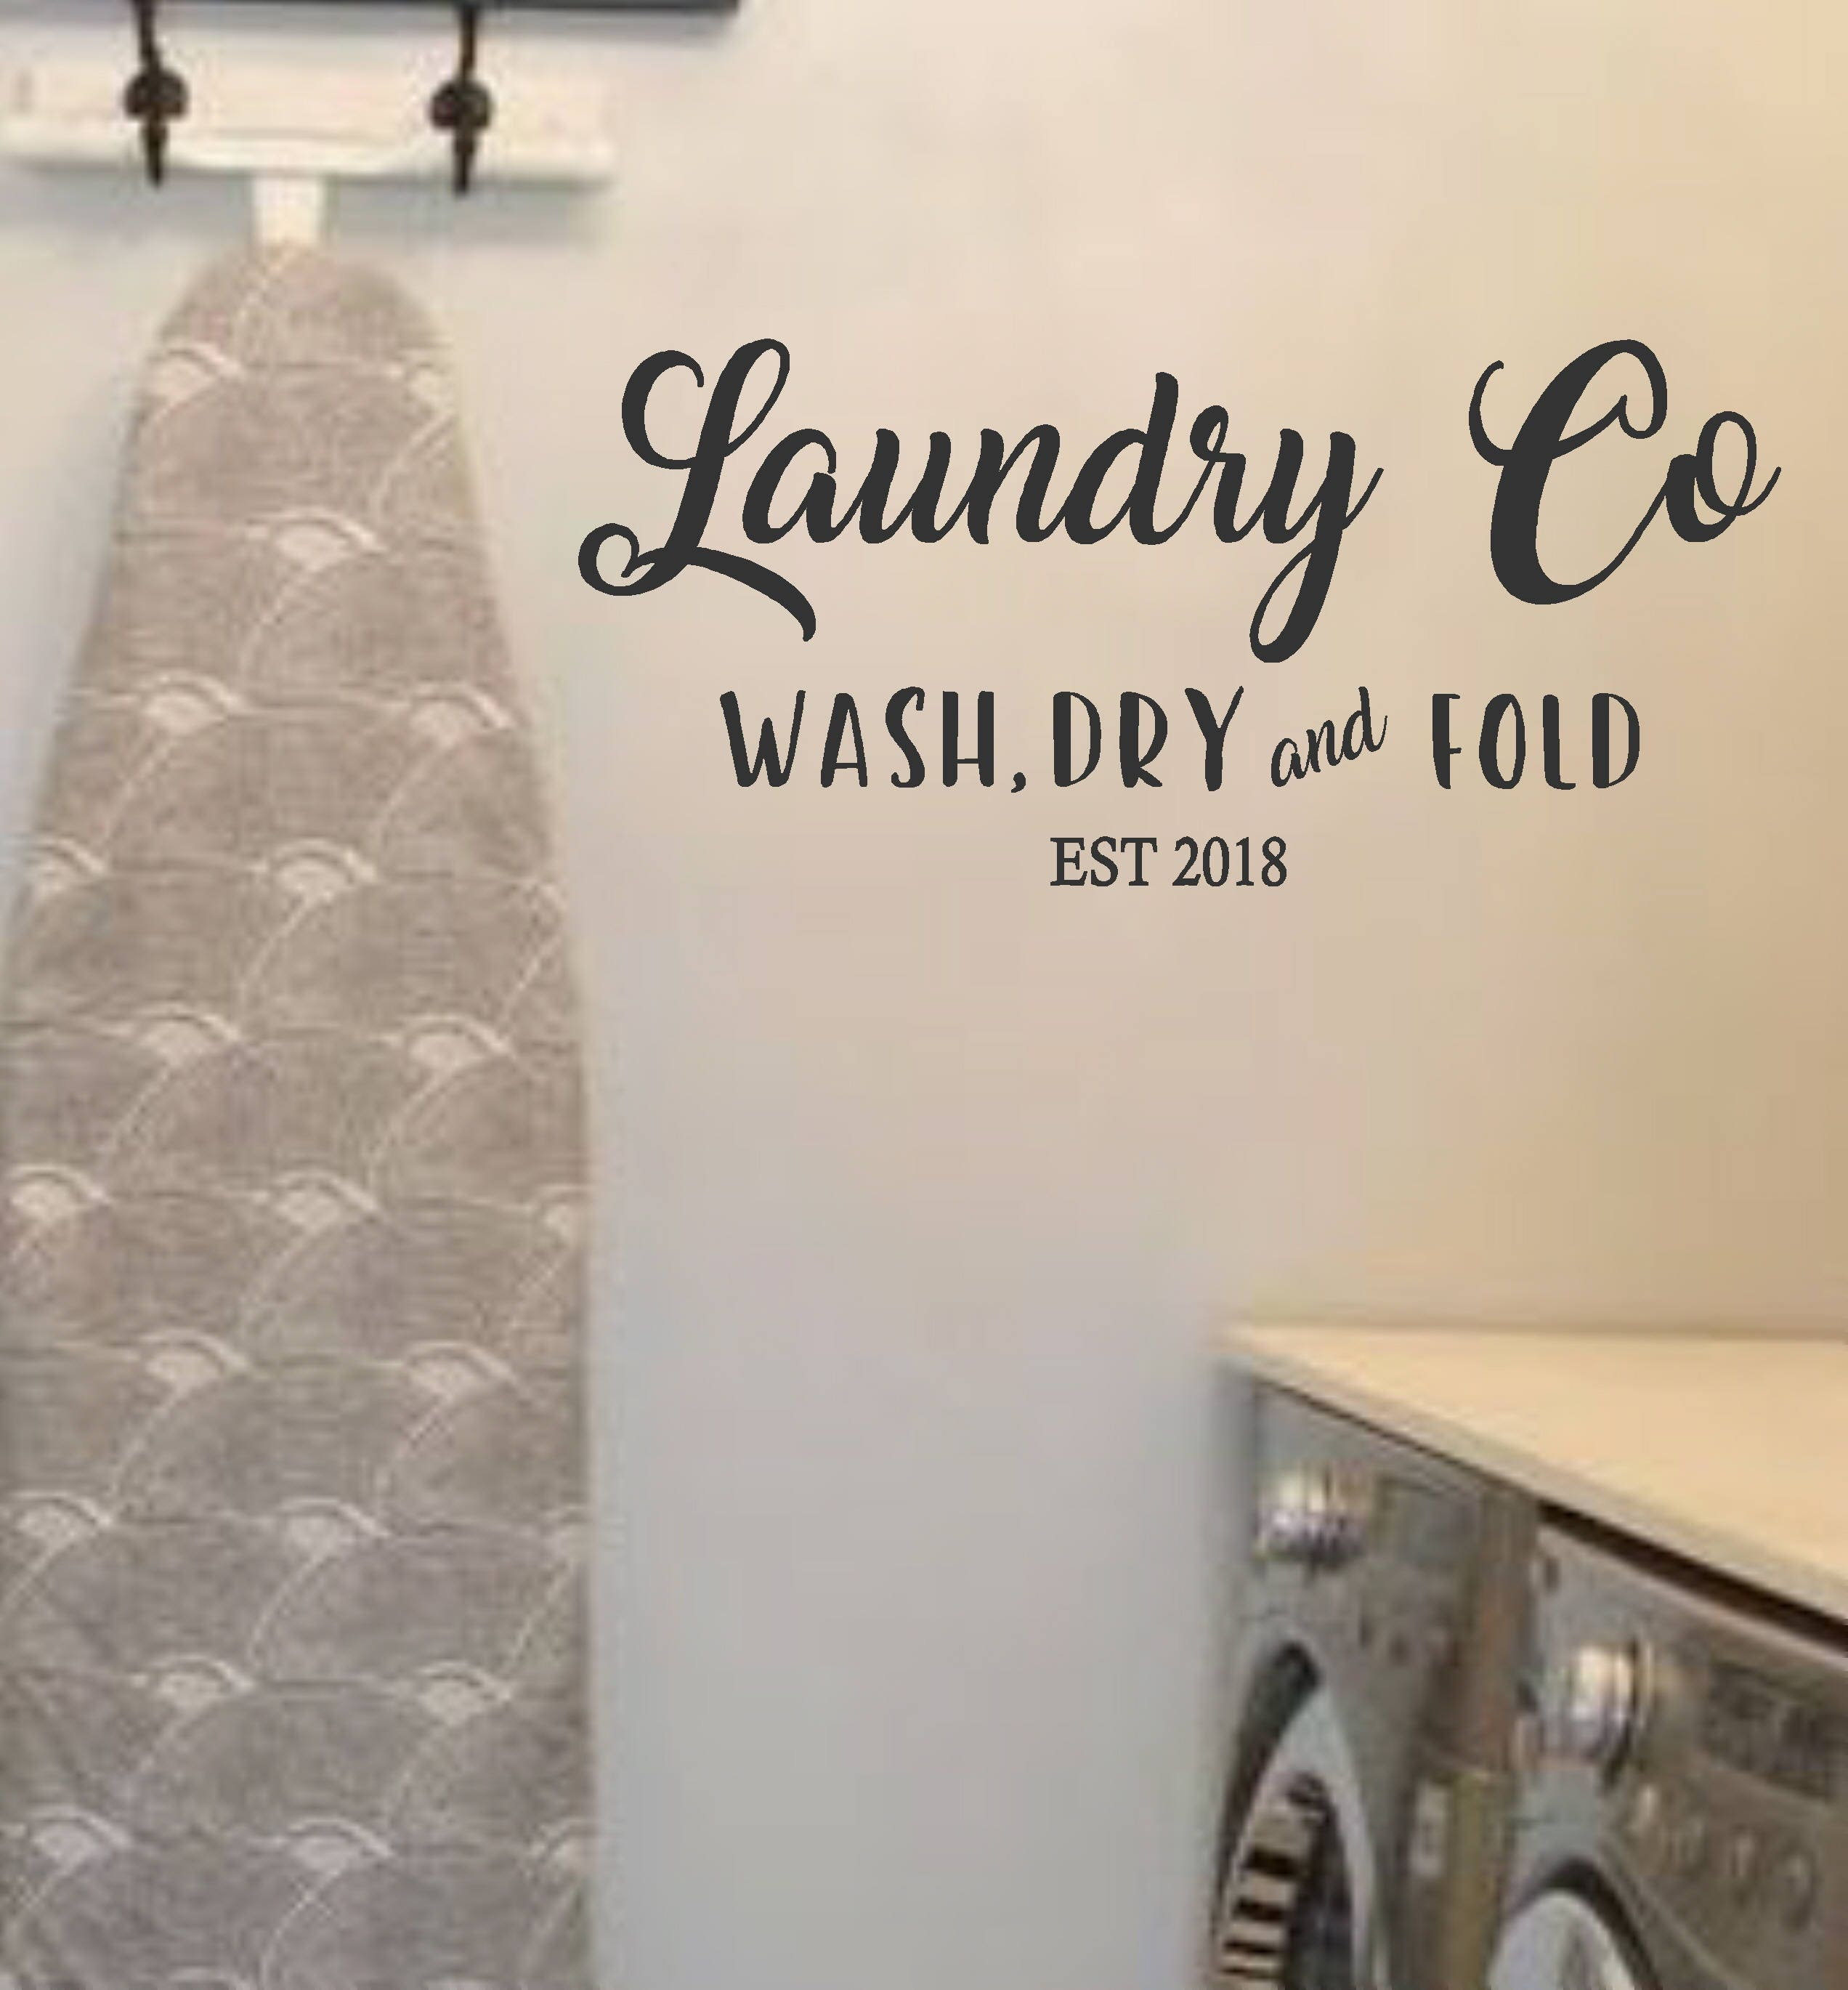 Laundry Room Vinyl Wall Decal Laundry Co Wash Dry Fold With Etsy